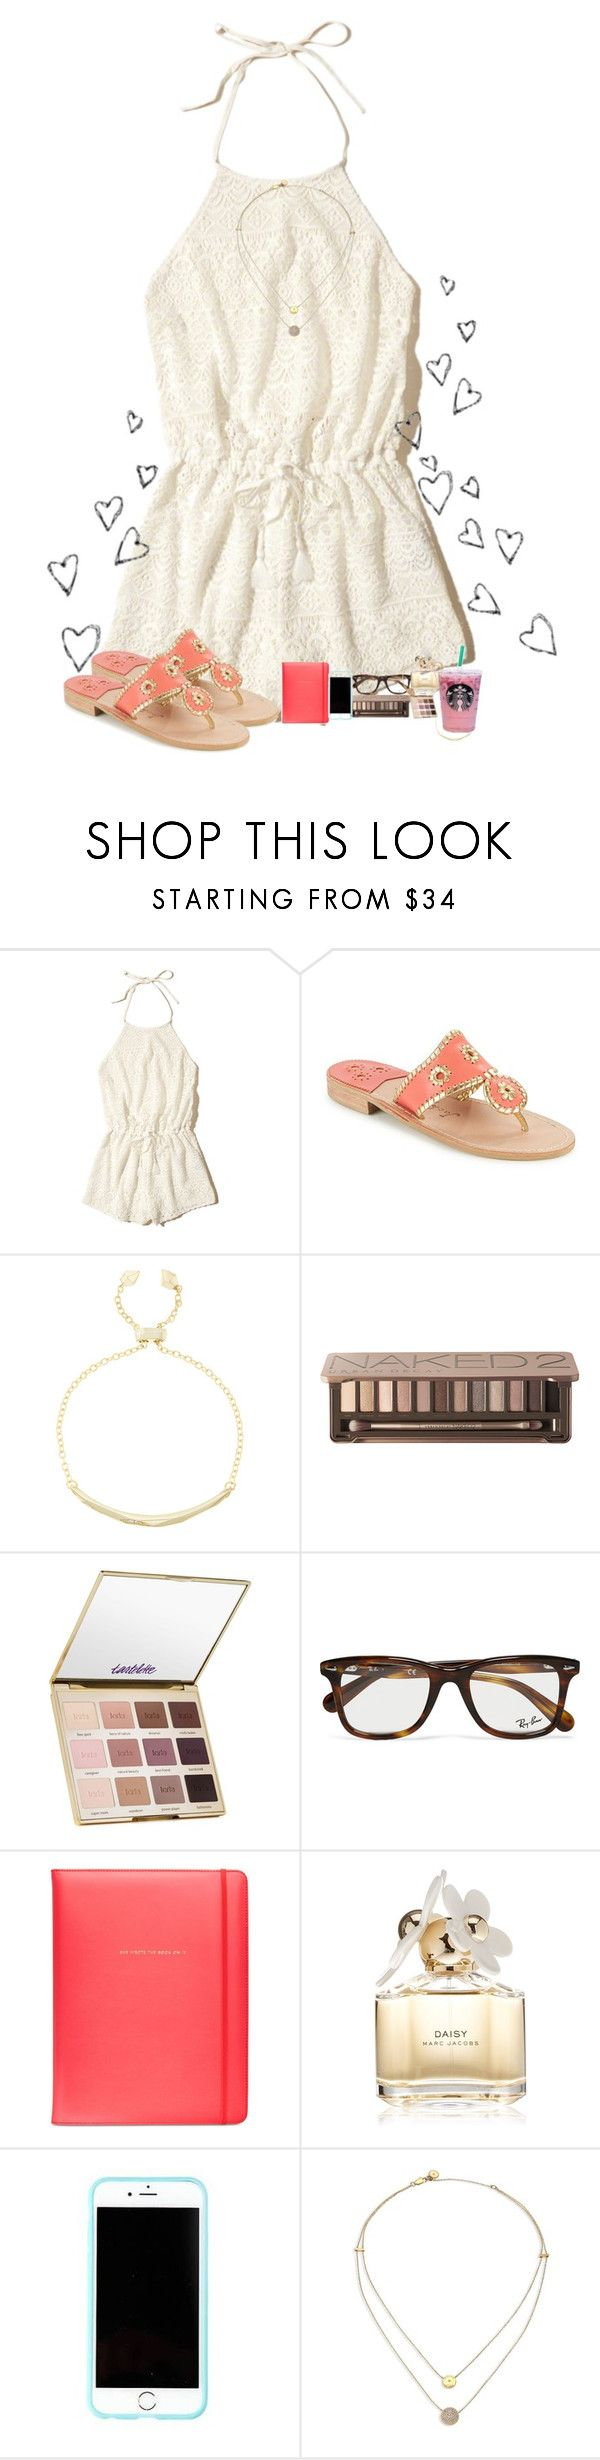 best ideas about lilly and co toddler dress please the description by a a leigh 10084 liked on polyvore featuring